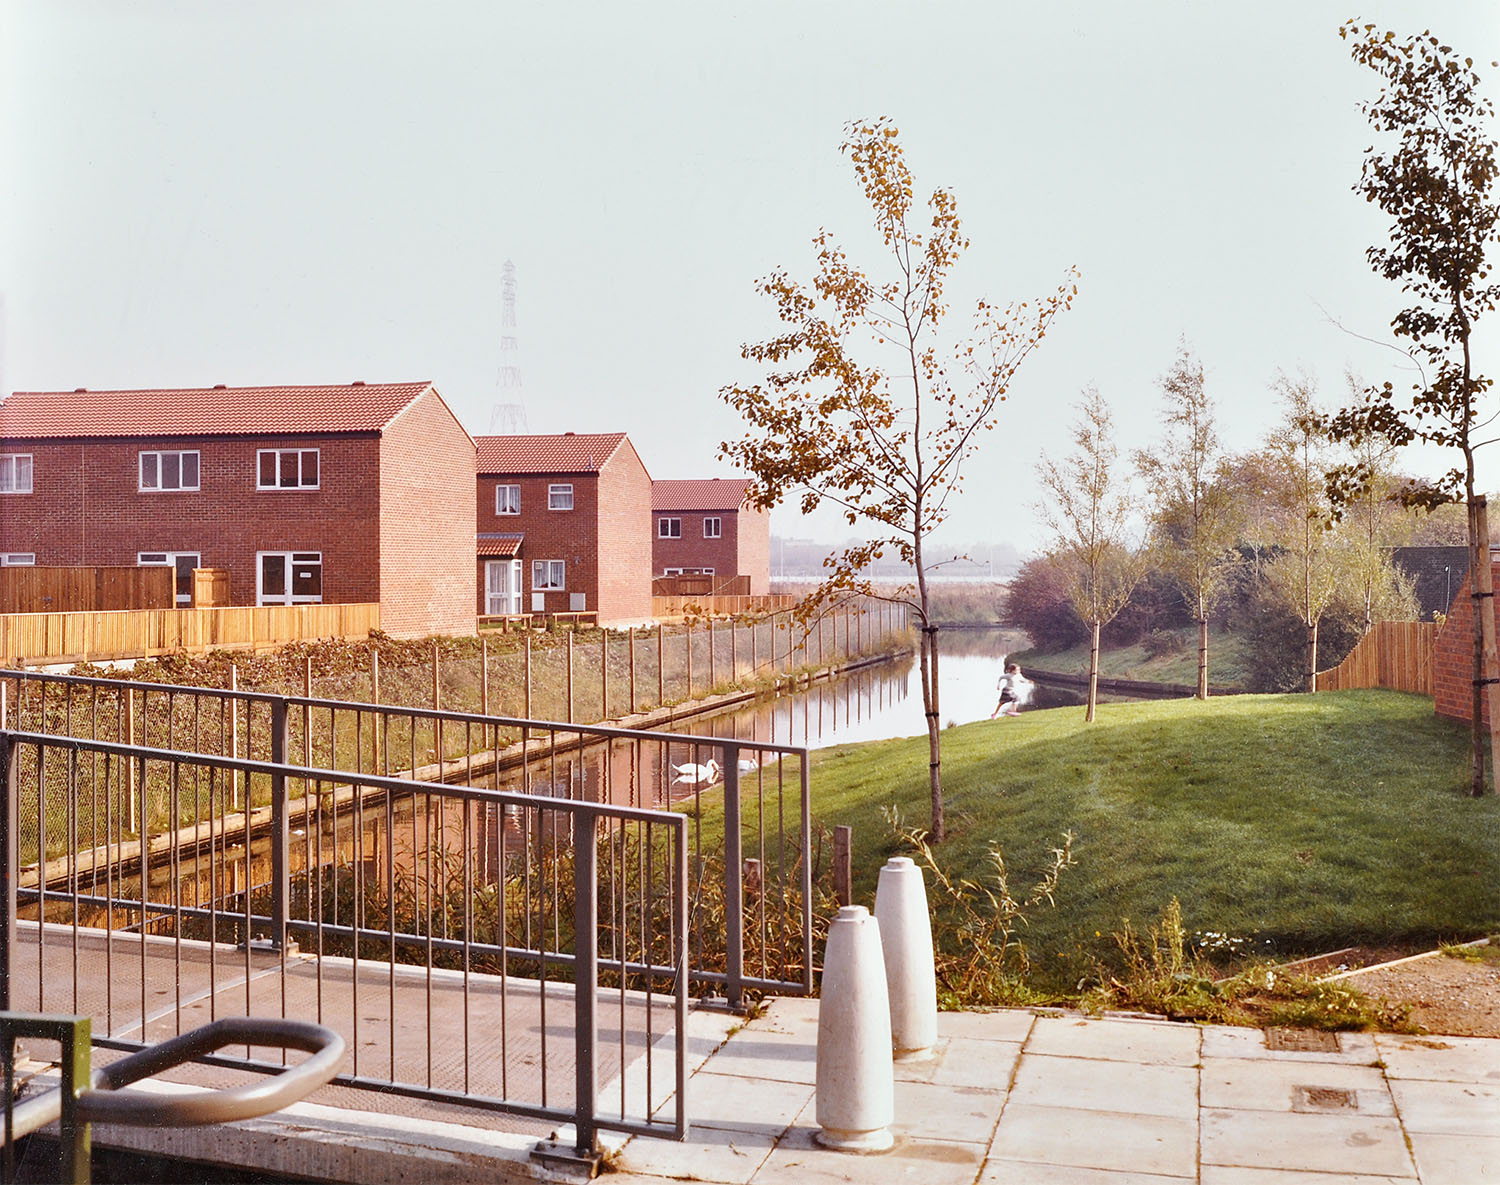 London Thamesmead: Manordene Road